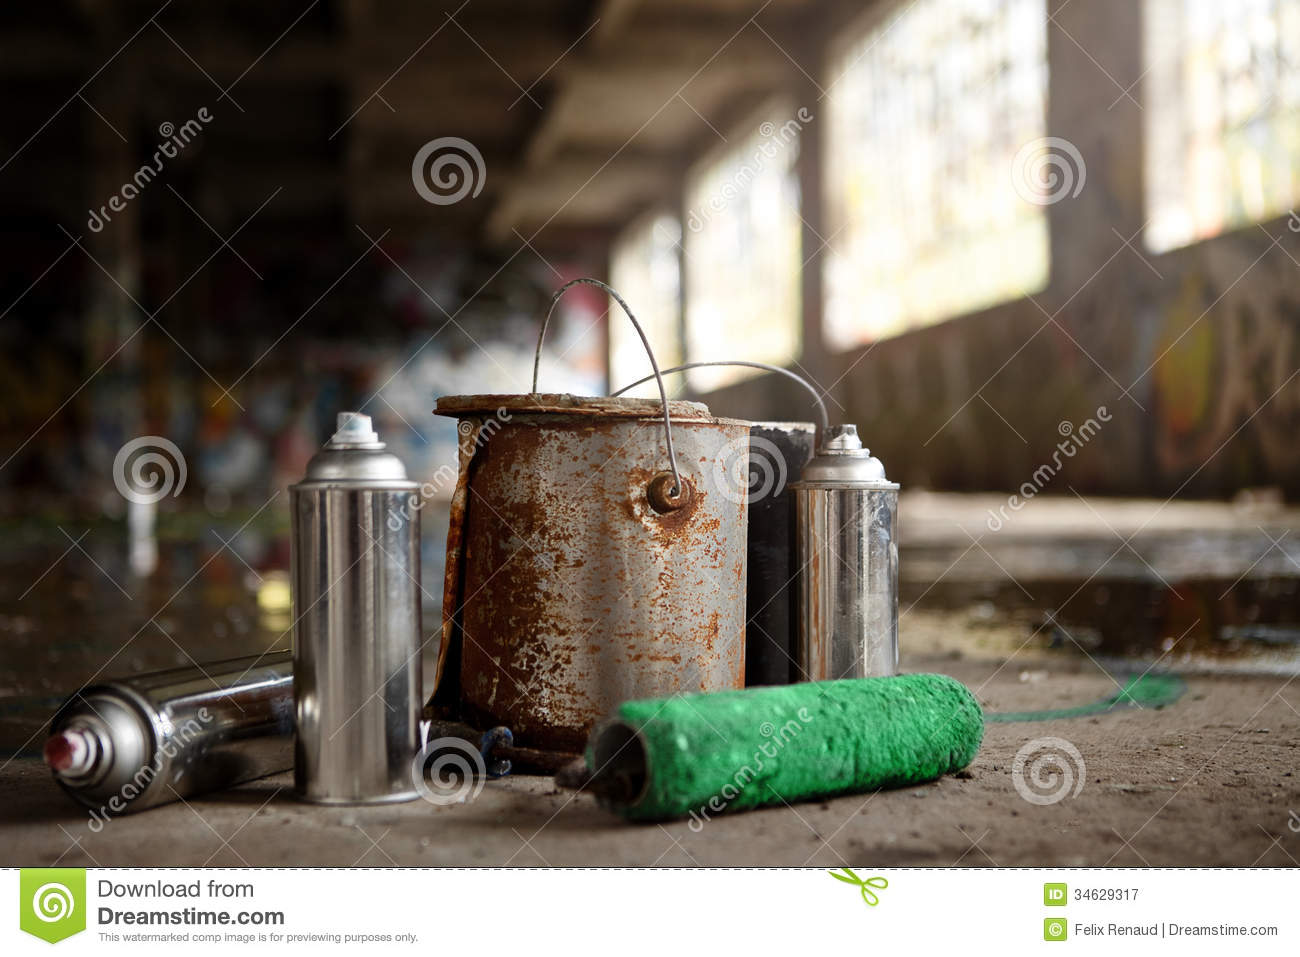 cans graffiti ground kit leftover spray theme vandalism abandoned can. Black Bedroom Furniture Sets. Home Design Ideas